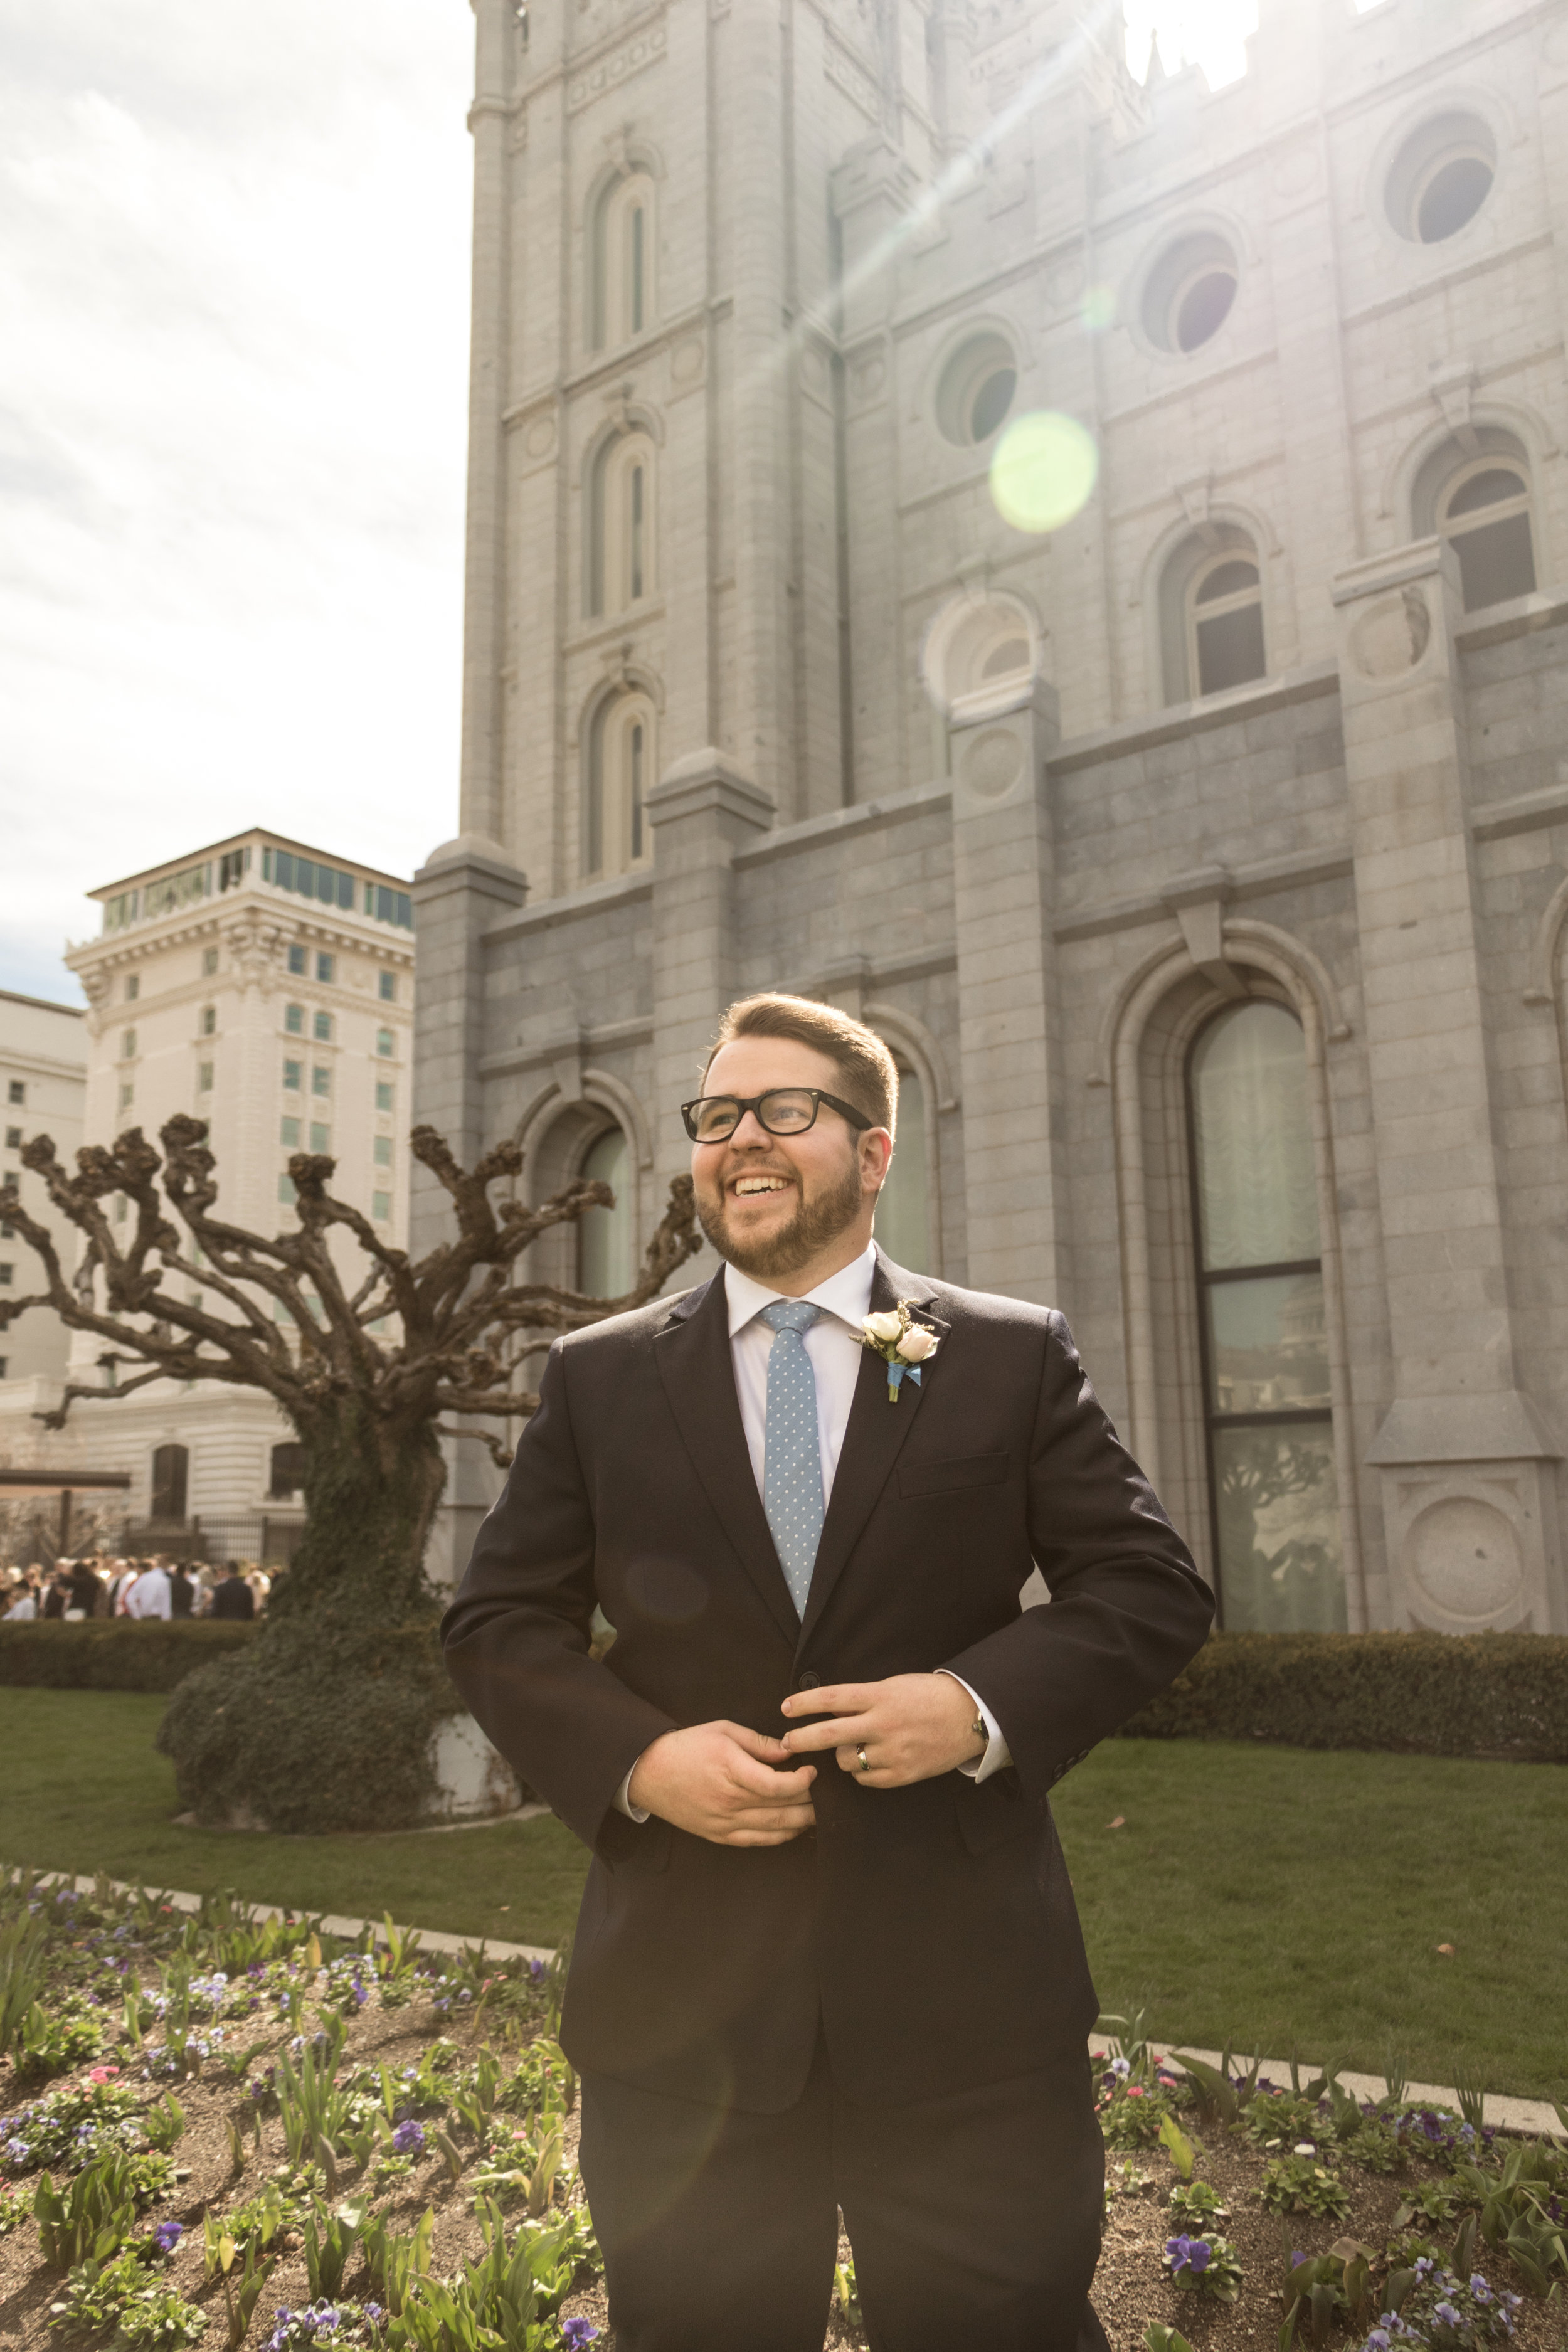 Utah Spring Wedding at the Salt Lake City Temple by Bri Bergman Photography13.JPG